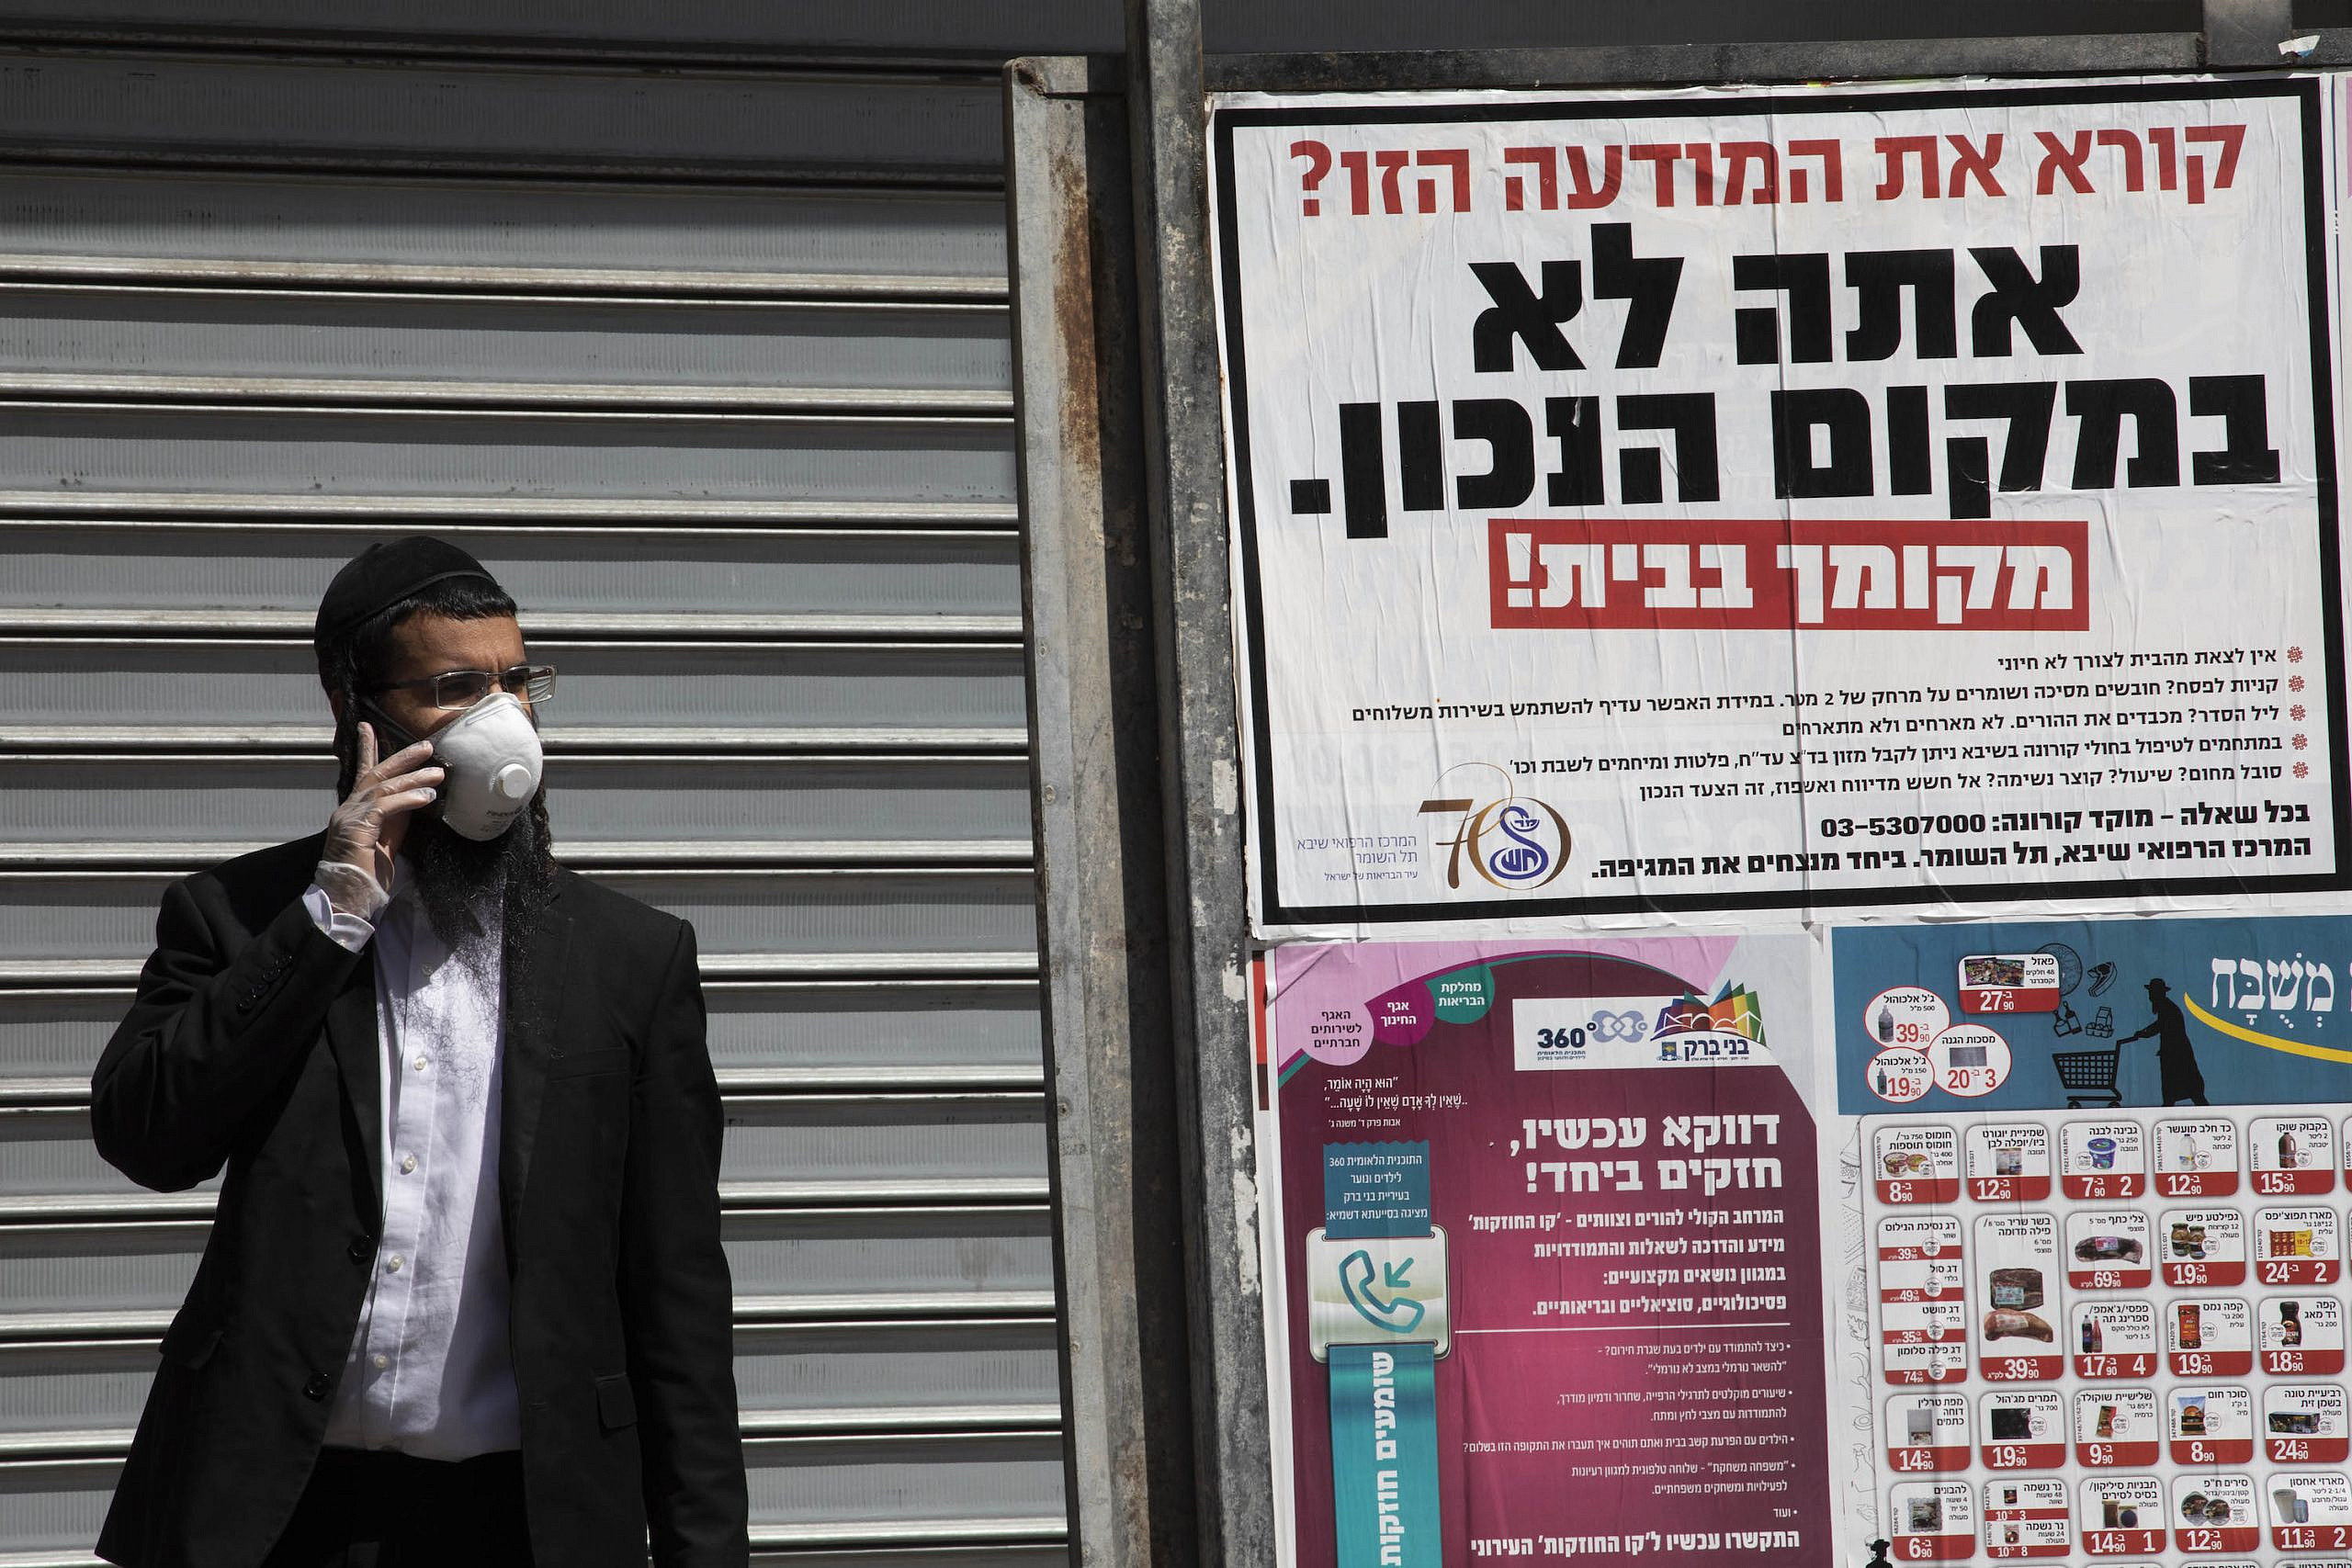 A Haredi man speaks on the phone in Bnei Brak, during a city-wide closure due to the coronavirus, April 3, 2020. (Oren Ziv)